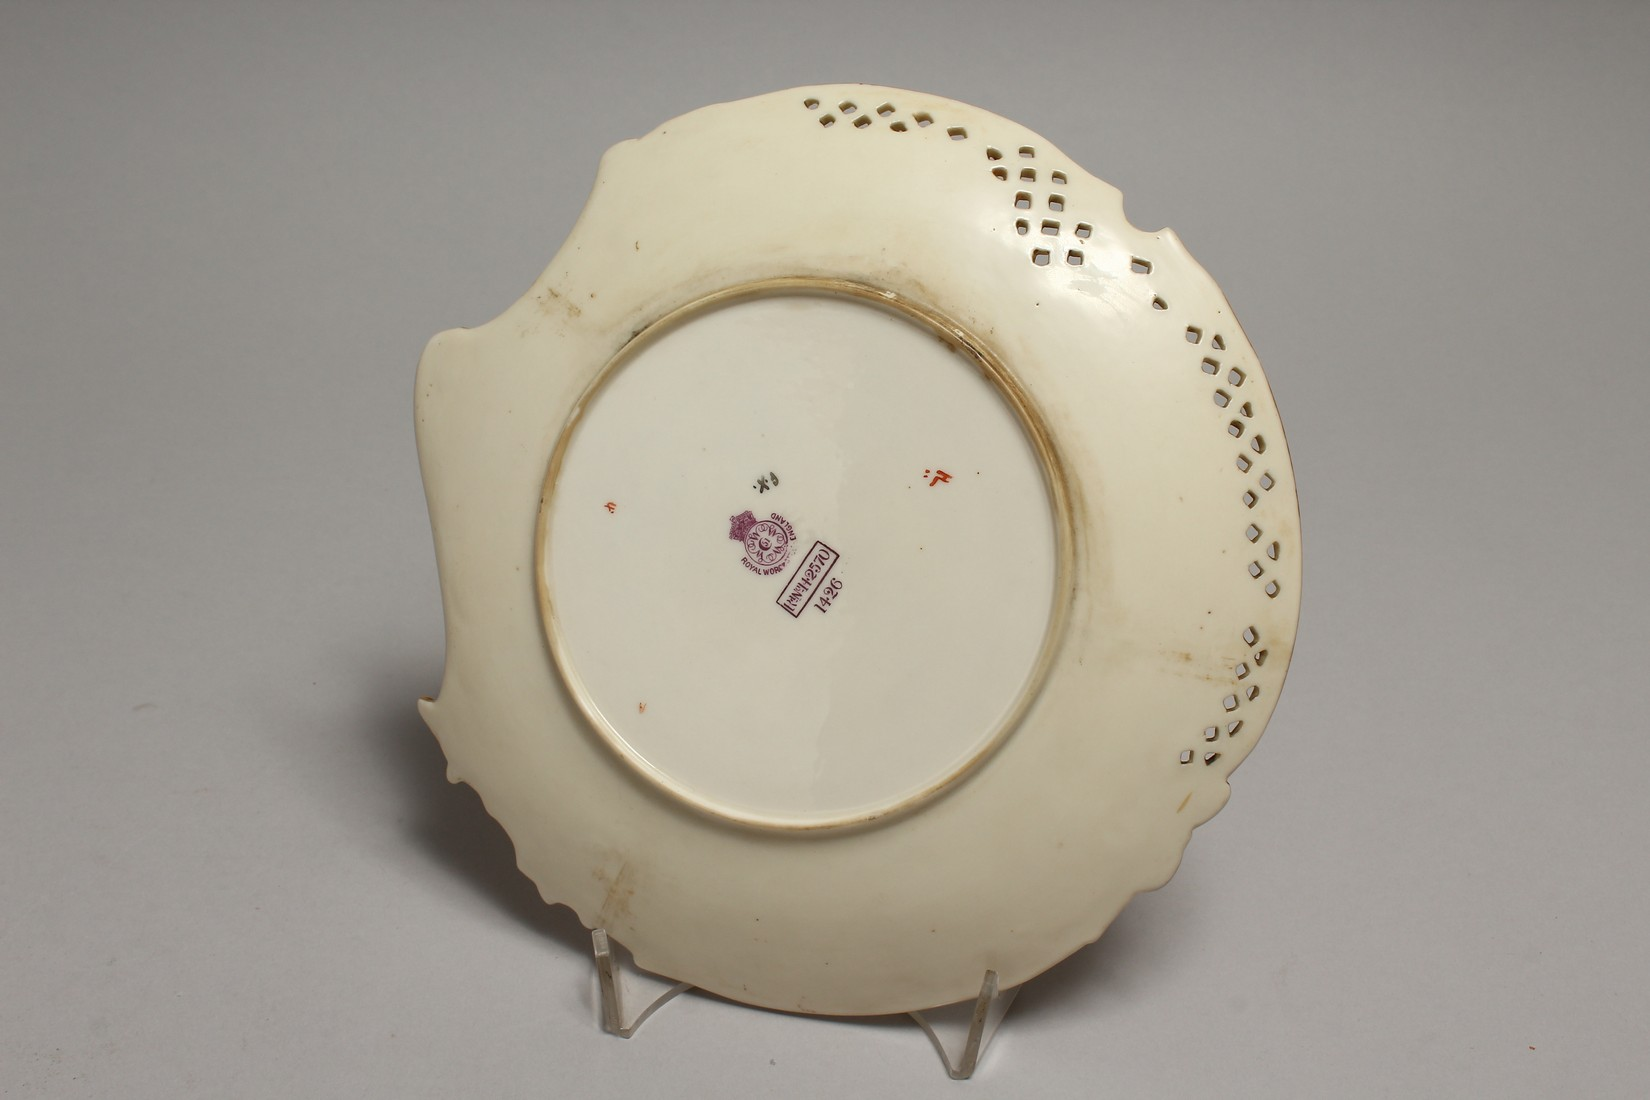 A ROYAL WORCESTER CREAM WARE FERN DISH. Pattern No. 1426 8.5ins diameter. - Image 3 of 4